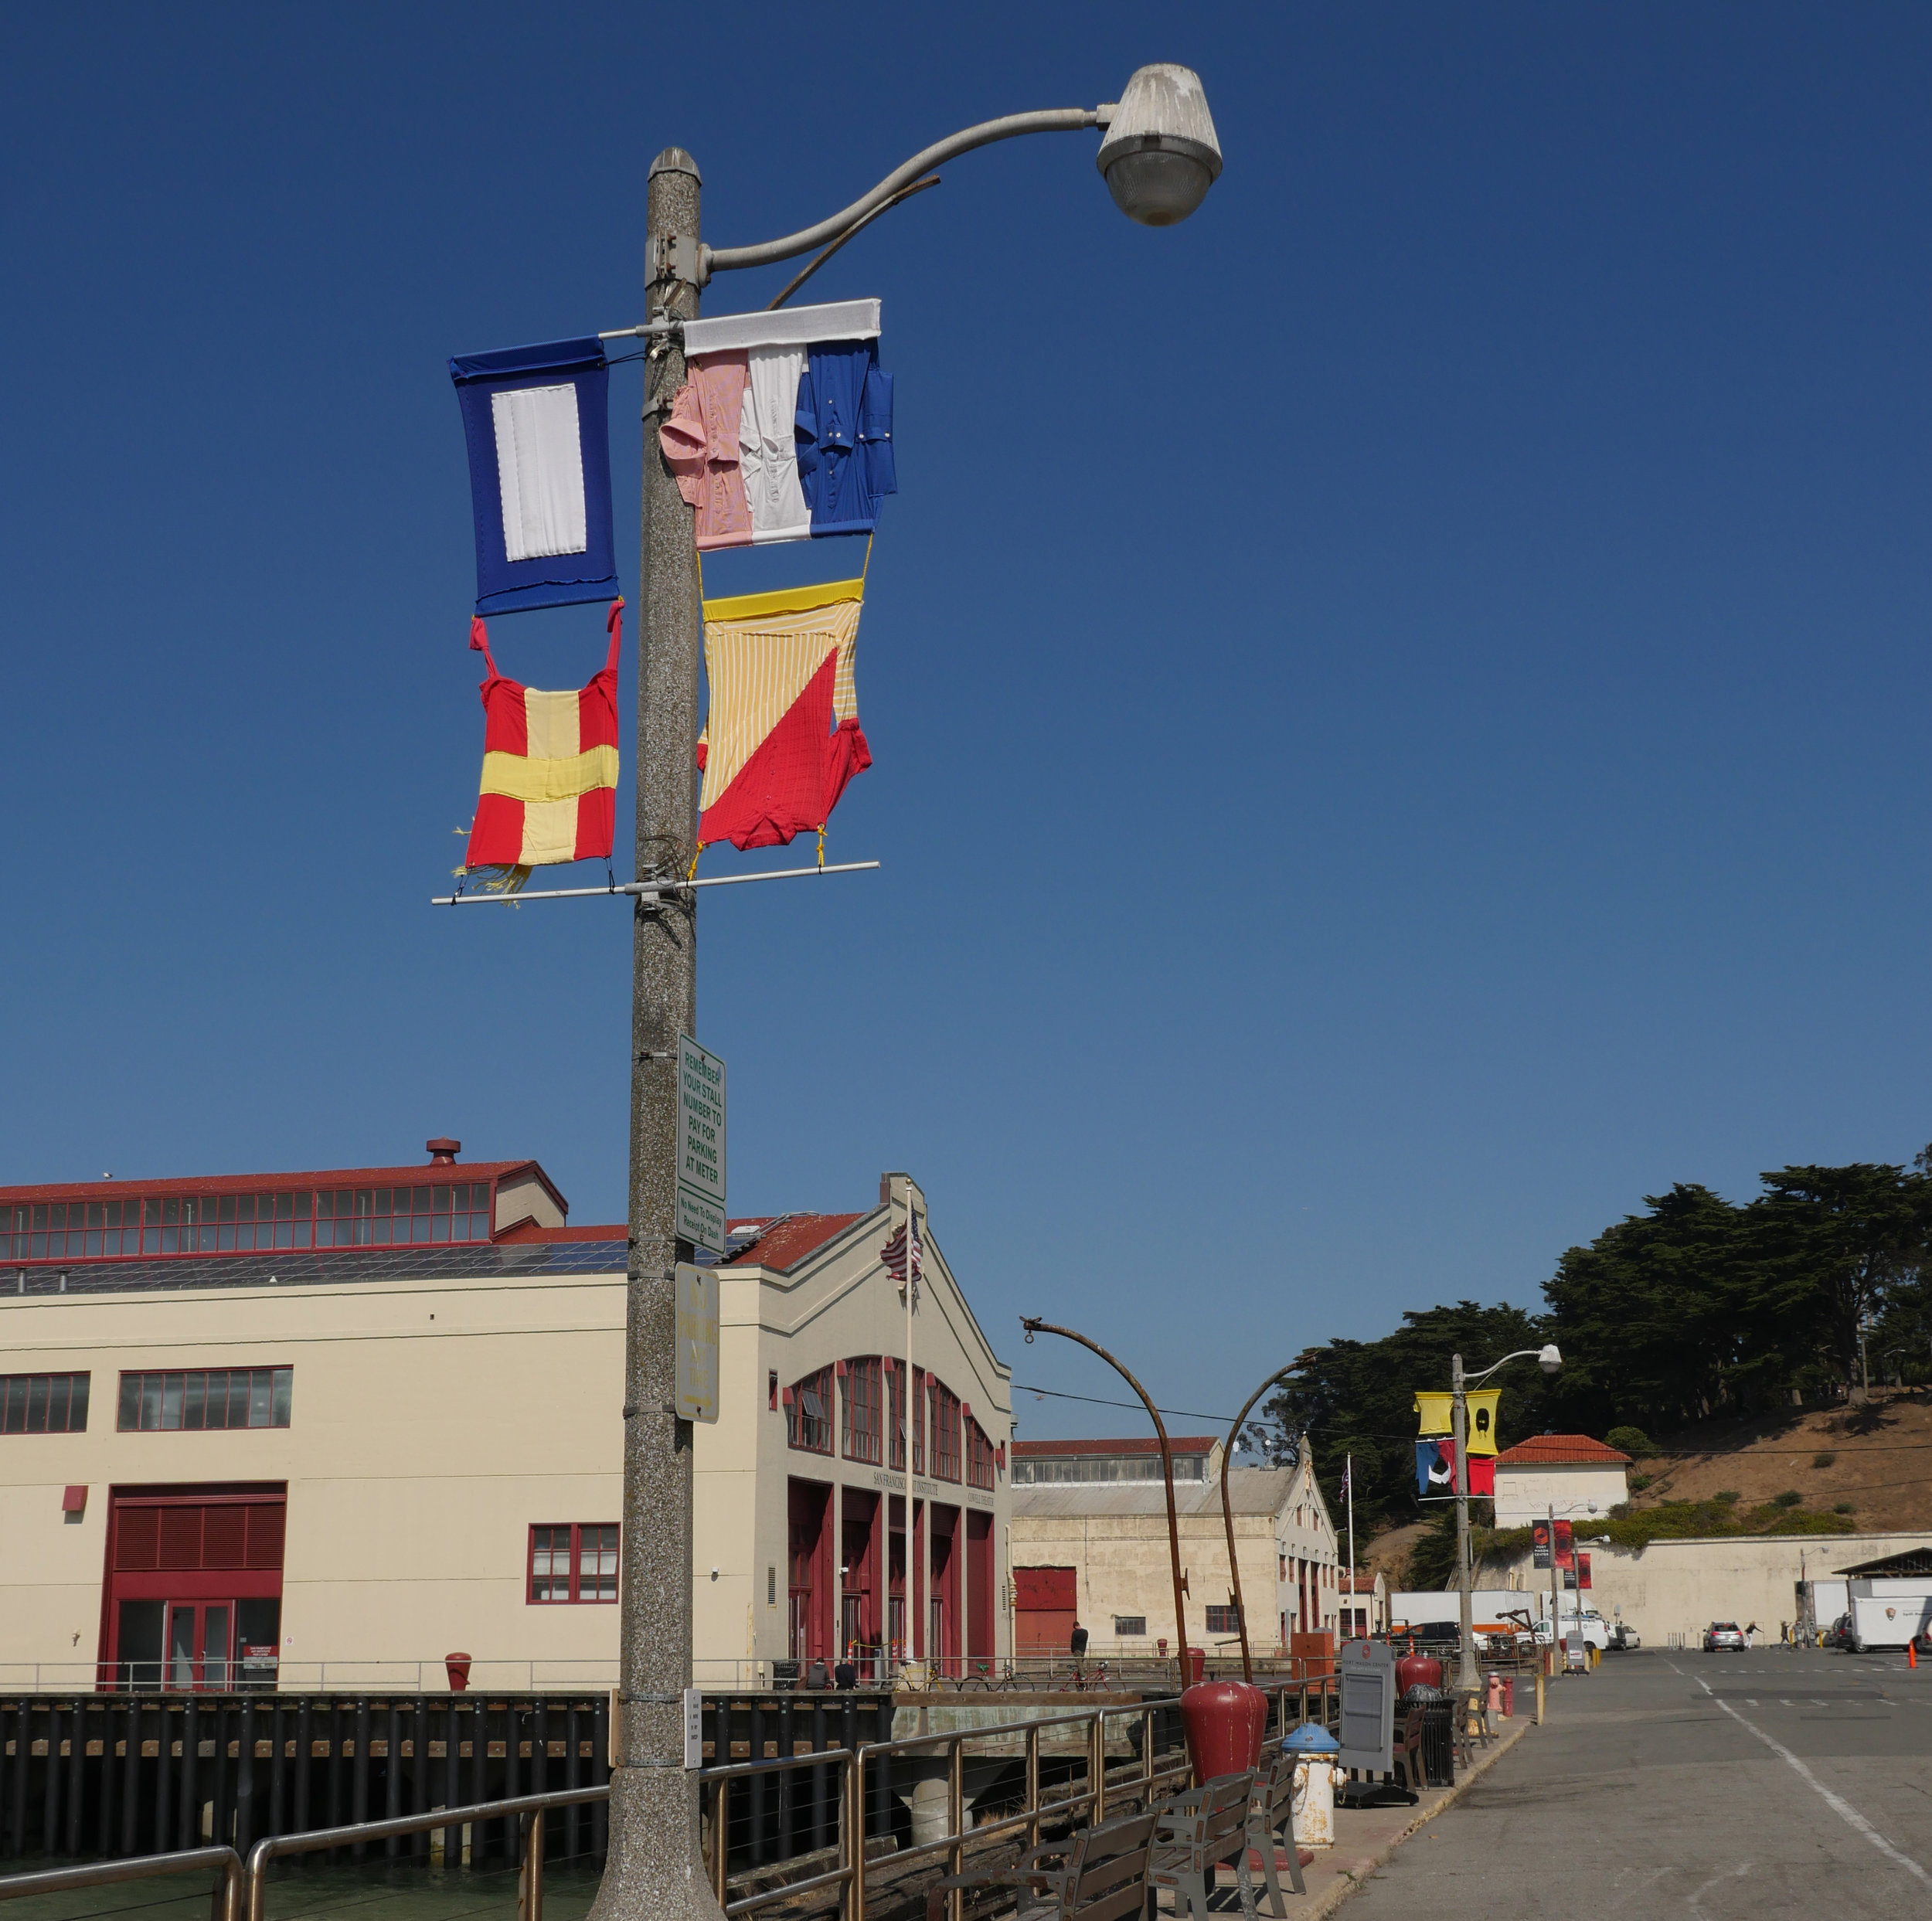 Signal flags made from discarded clothing, installed on lampposts overlooking the bay